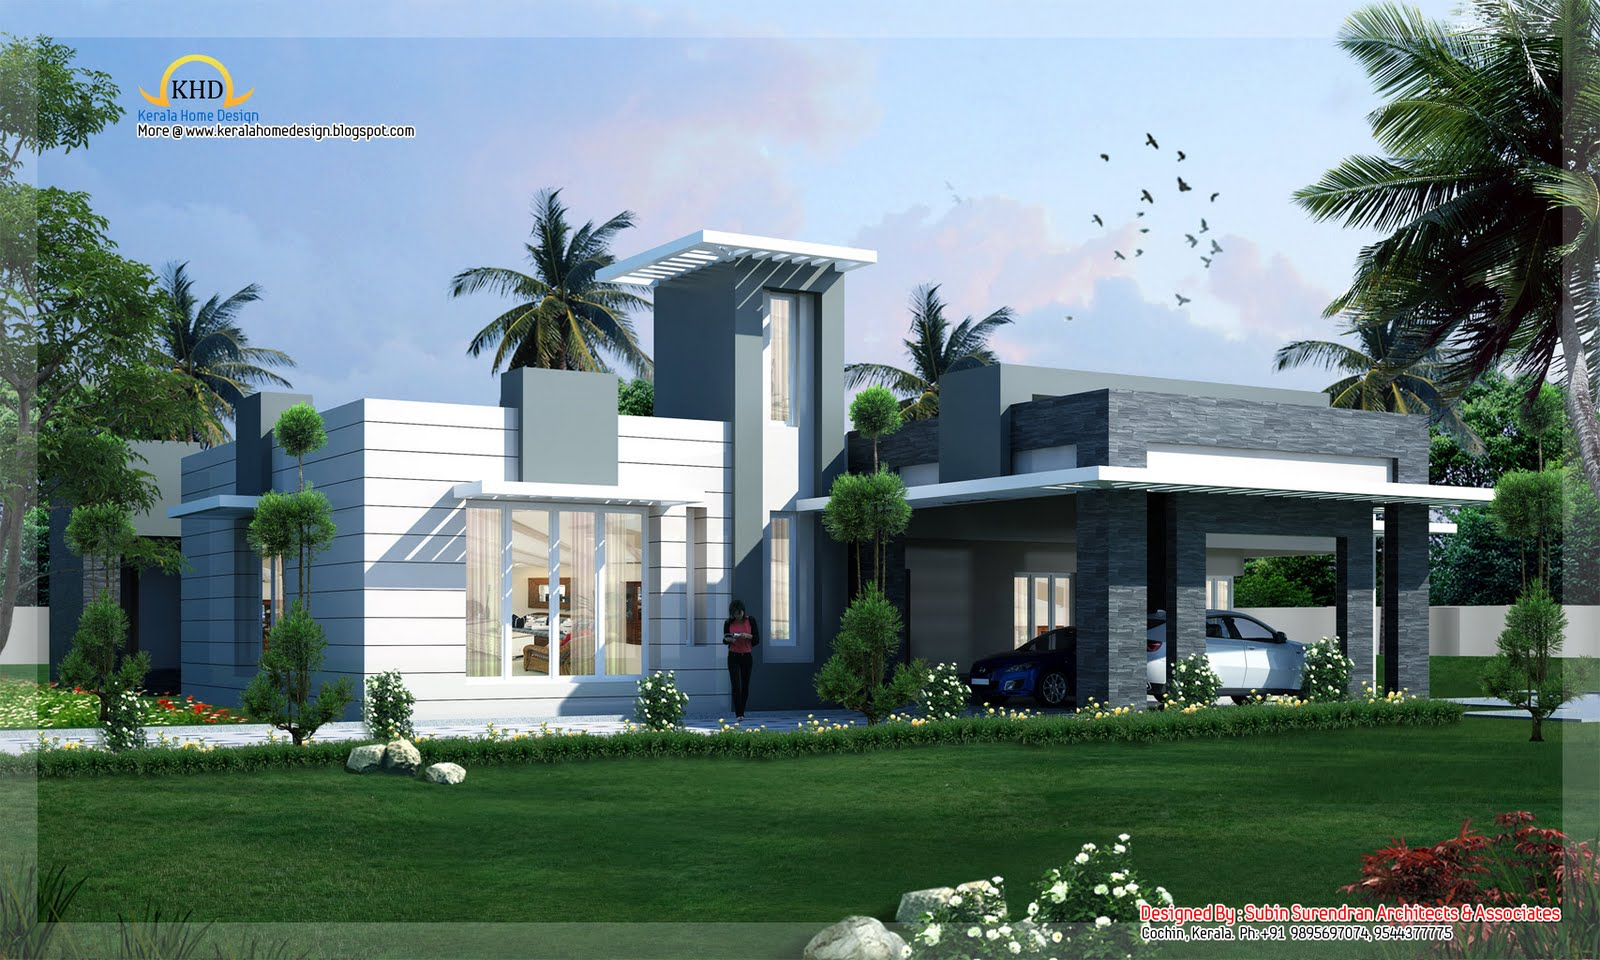 Modern contemporary home design 4500 sq ft kerala home design and floor plans for Contemporary modern home designs